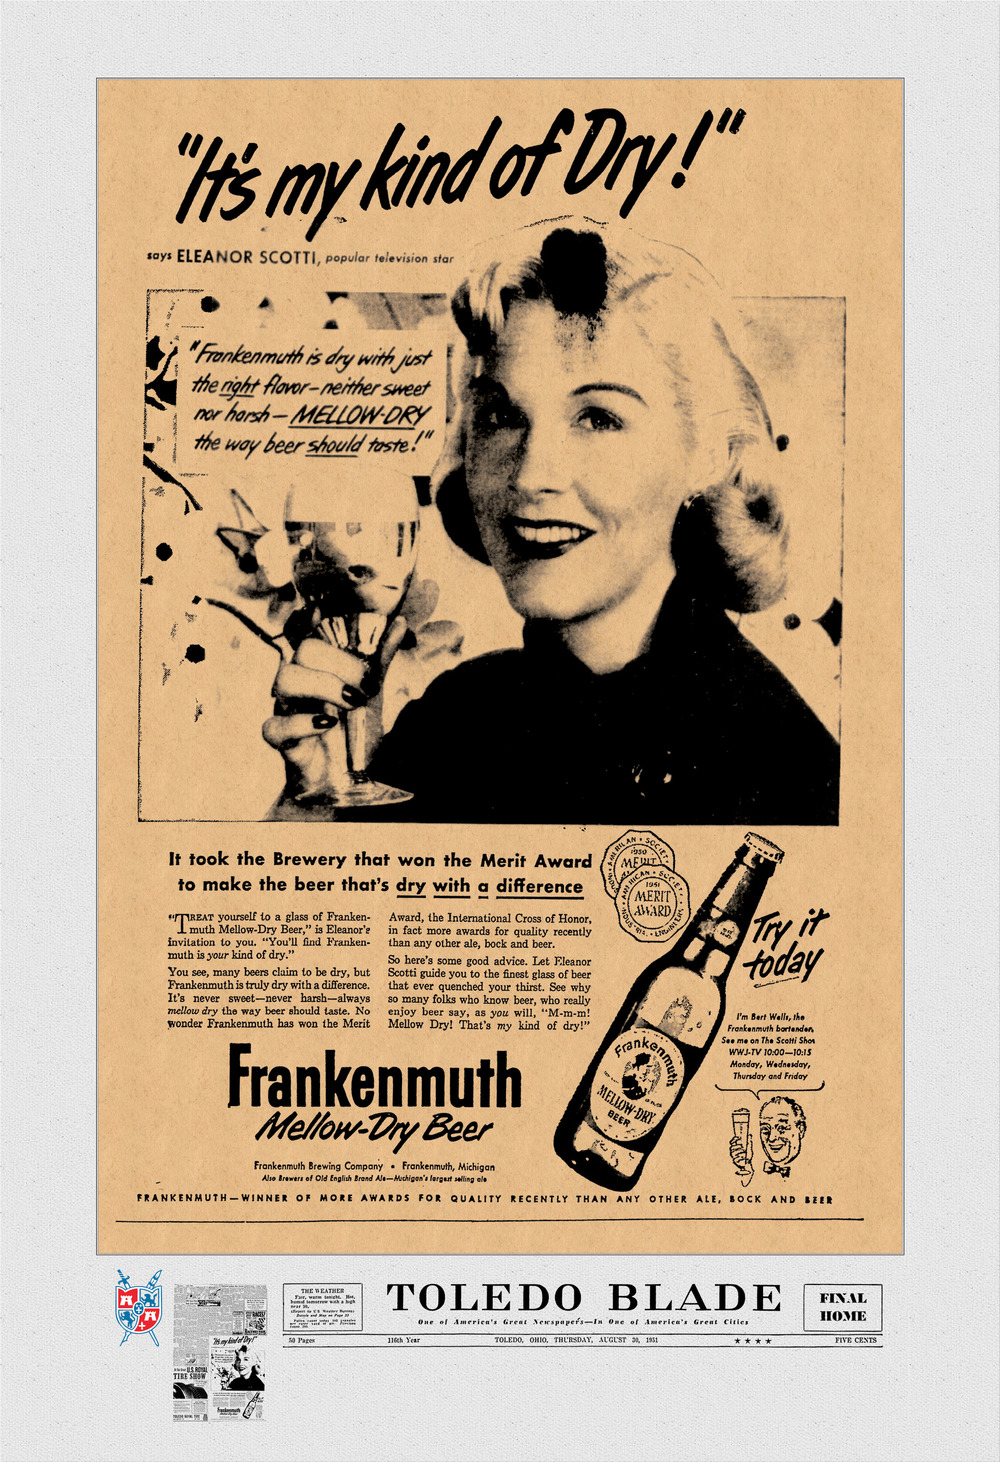 SAMPLE frankenmuth ad 1951-08-30.jpg